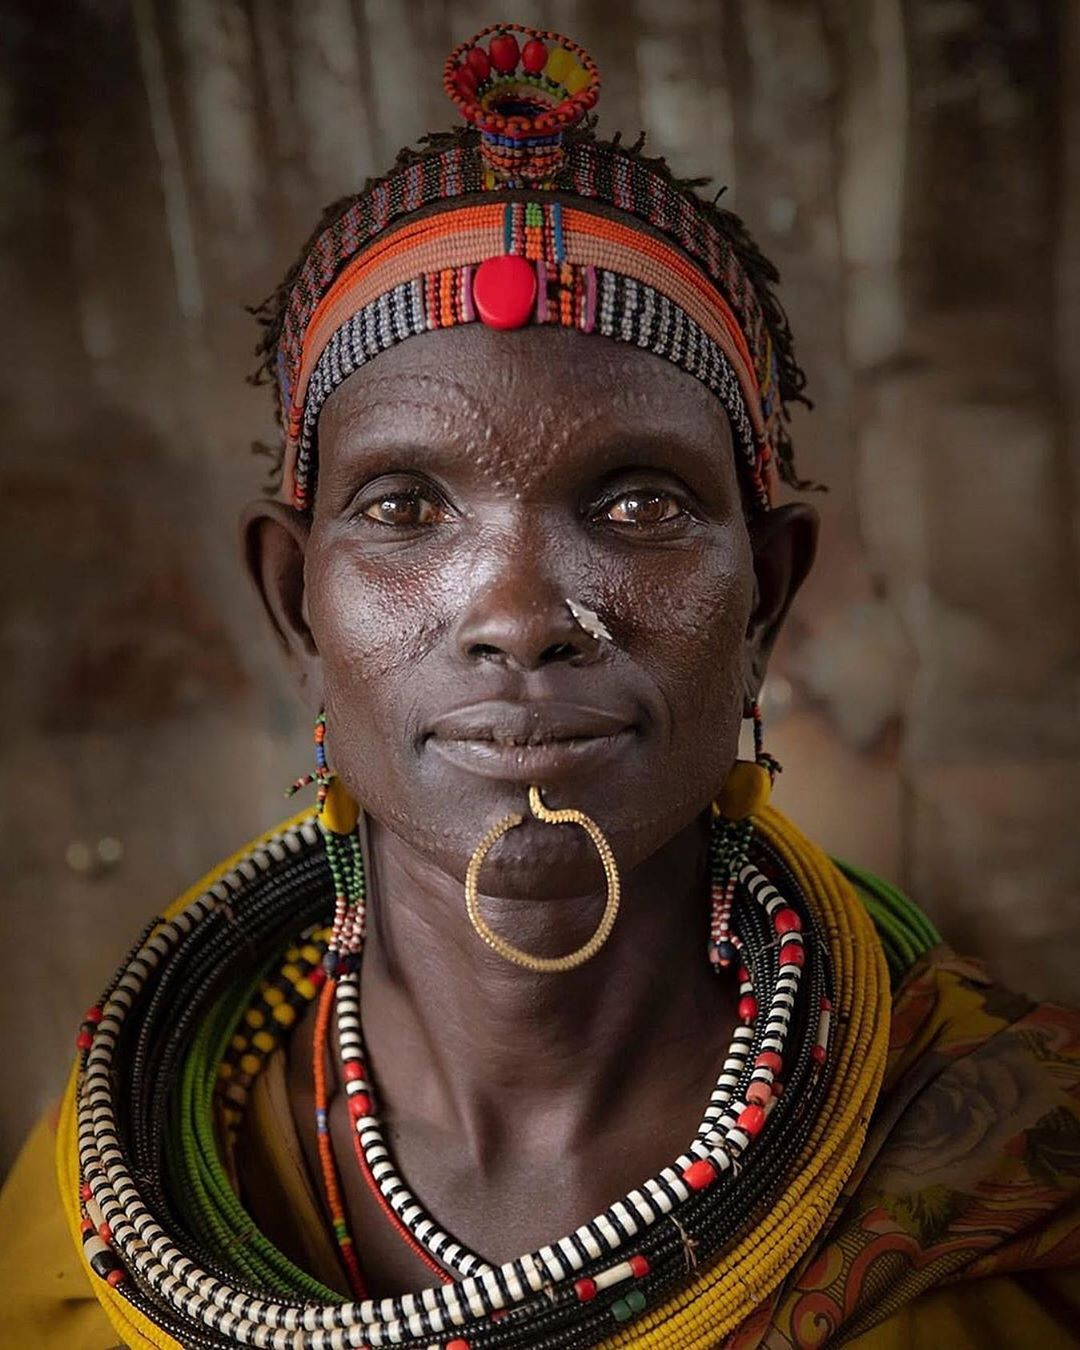 """Atlas of Humanity on Instagram: """"Woman of the Toposa tribe, Kapoeta, South Sudan © Gon Poullet @phototravel_spain • Atlas of Humanity will be exhibited in Paris, November…"""""""